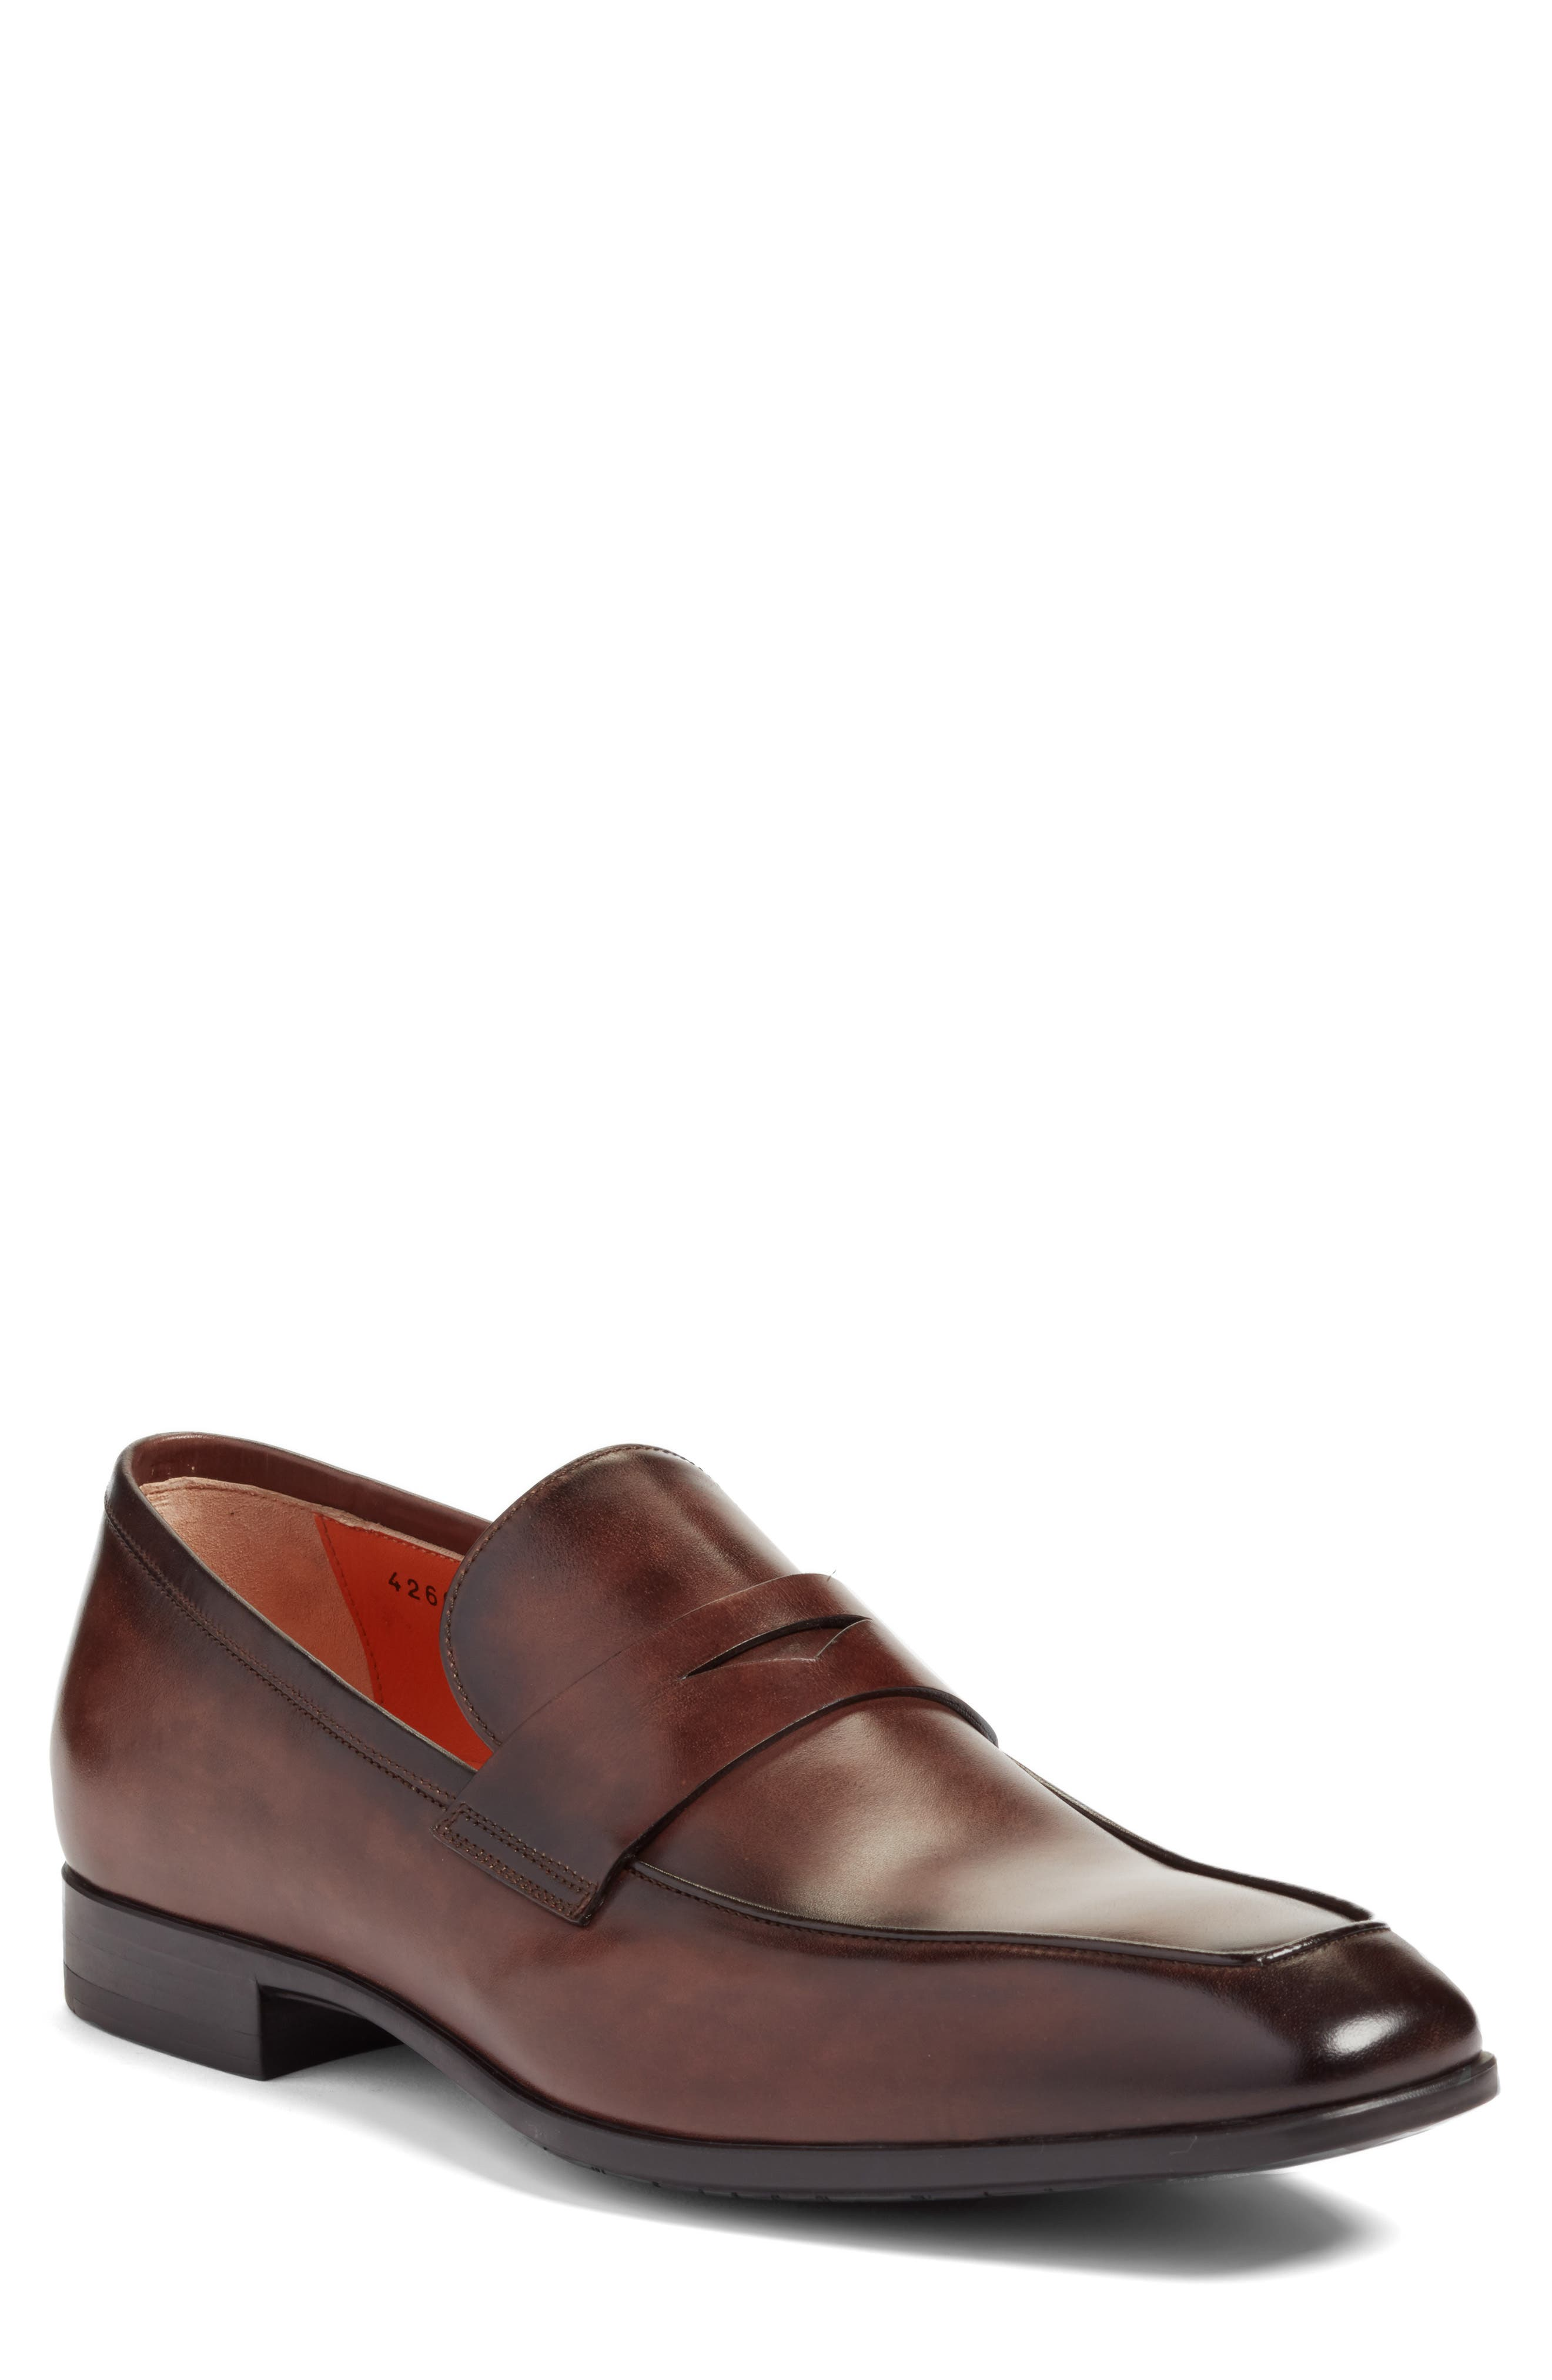 Fisk Square Toe Penny Loafer,                         Main,                         color, BROWN LEATHER